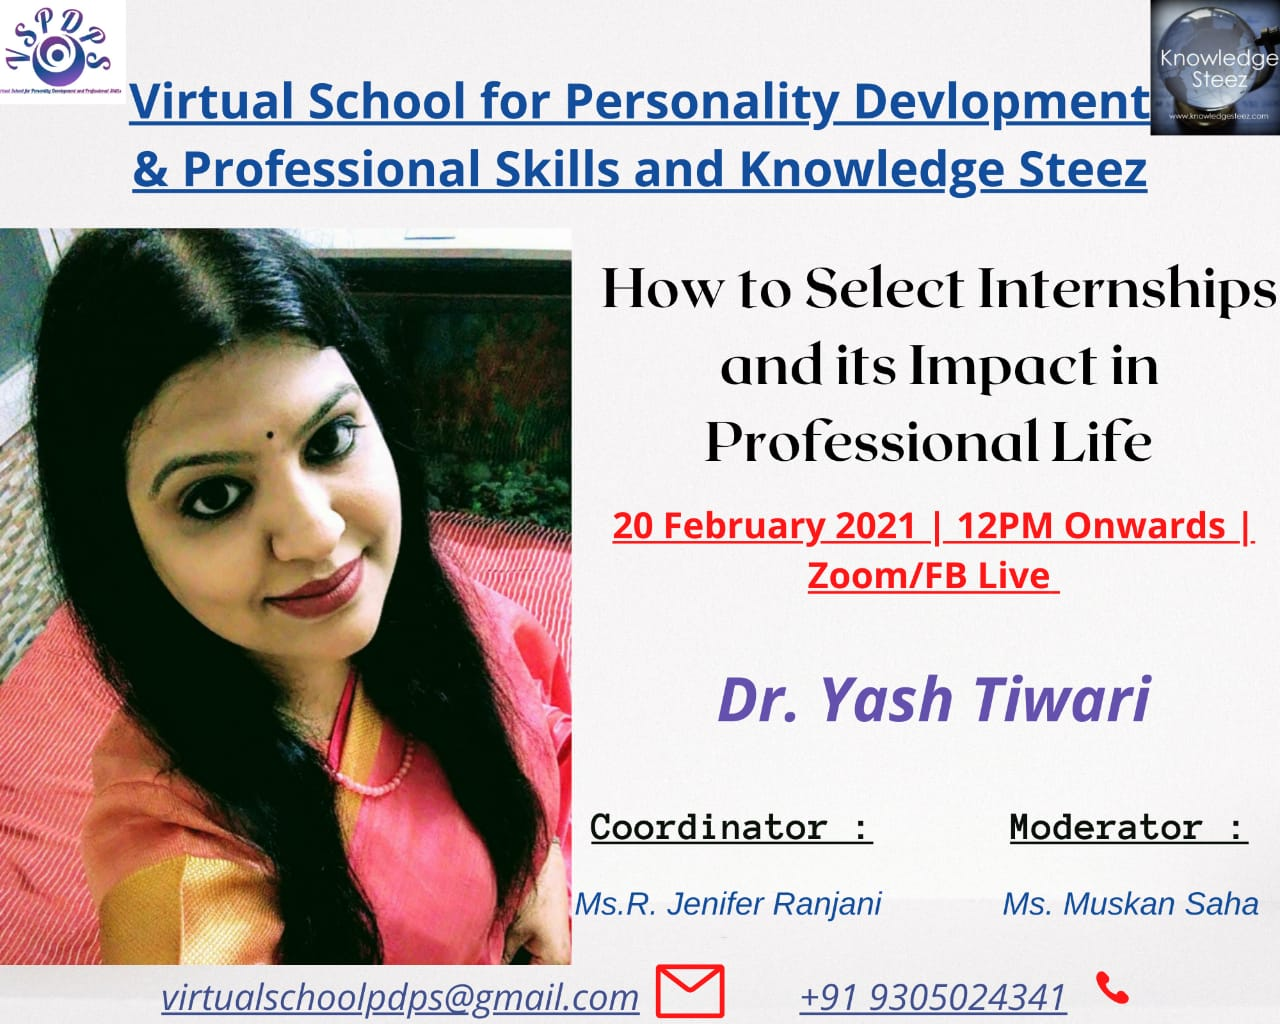 """Webinar on """"How to select Internships and its Impact on Professional Life"""" on 20th February 2021"""